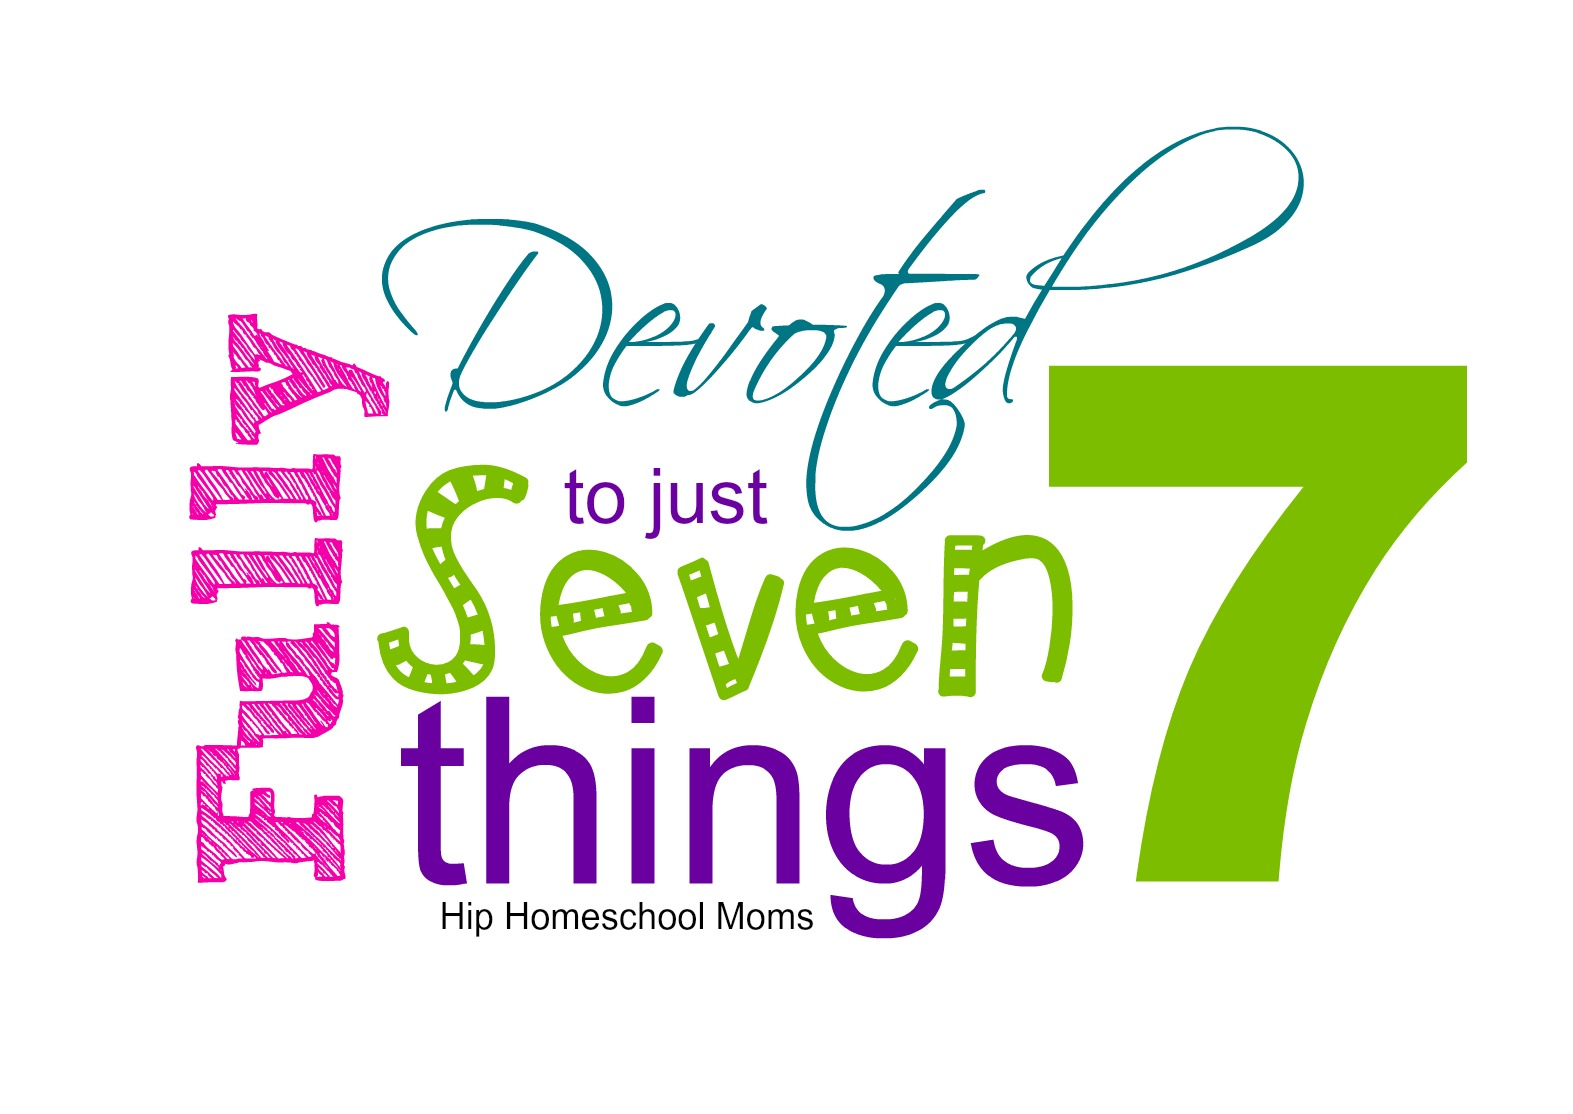 Fully Devoted to Just 7 Things